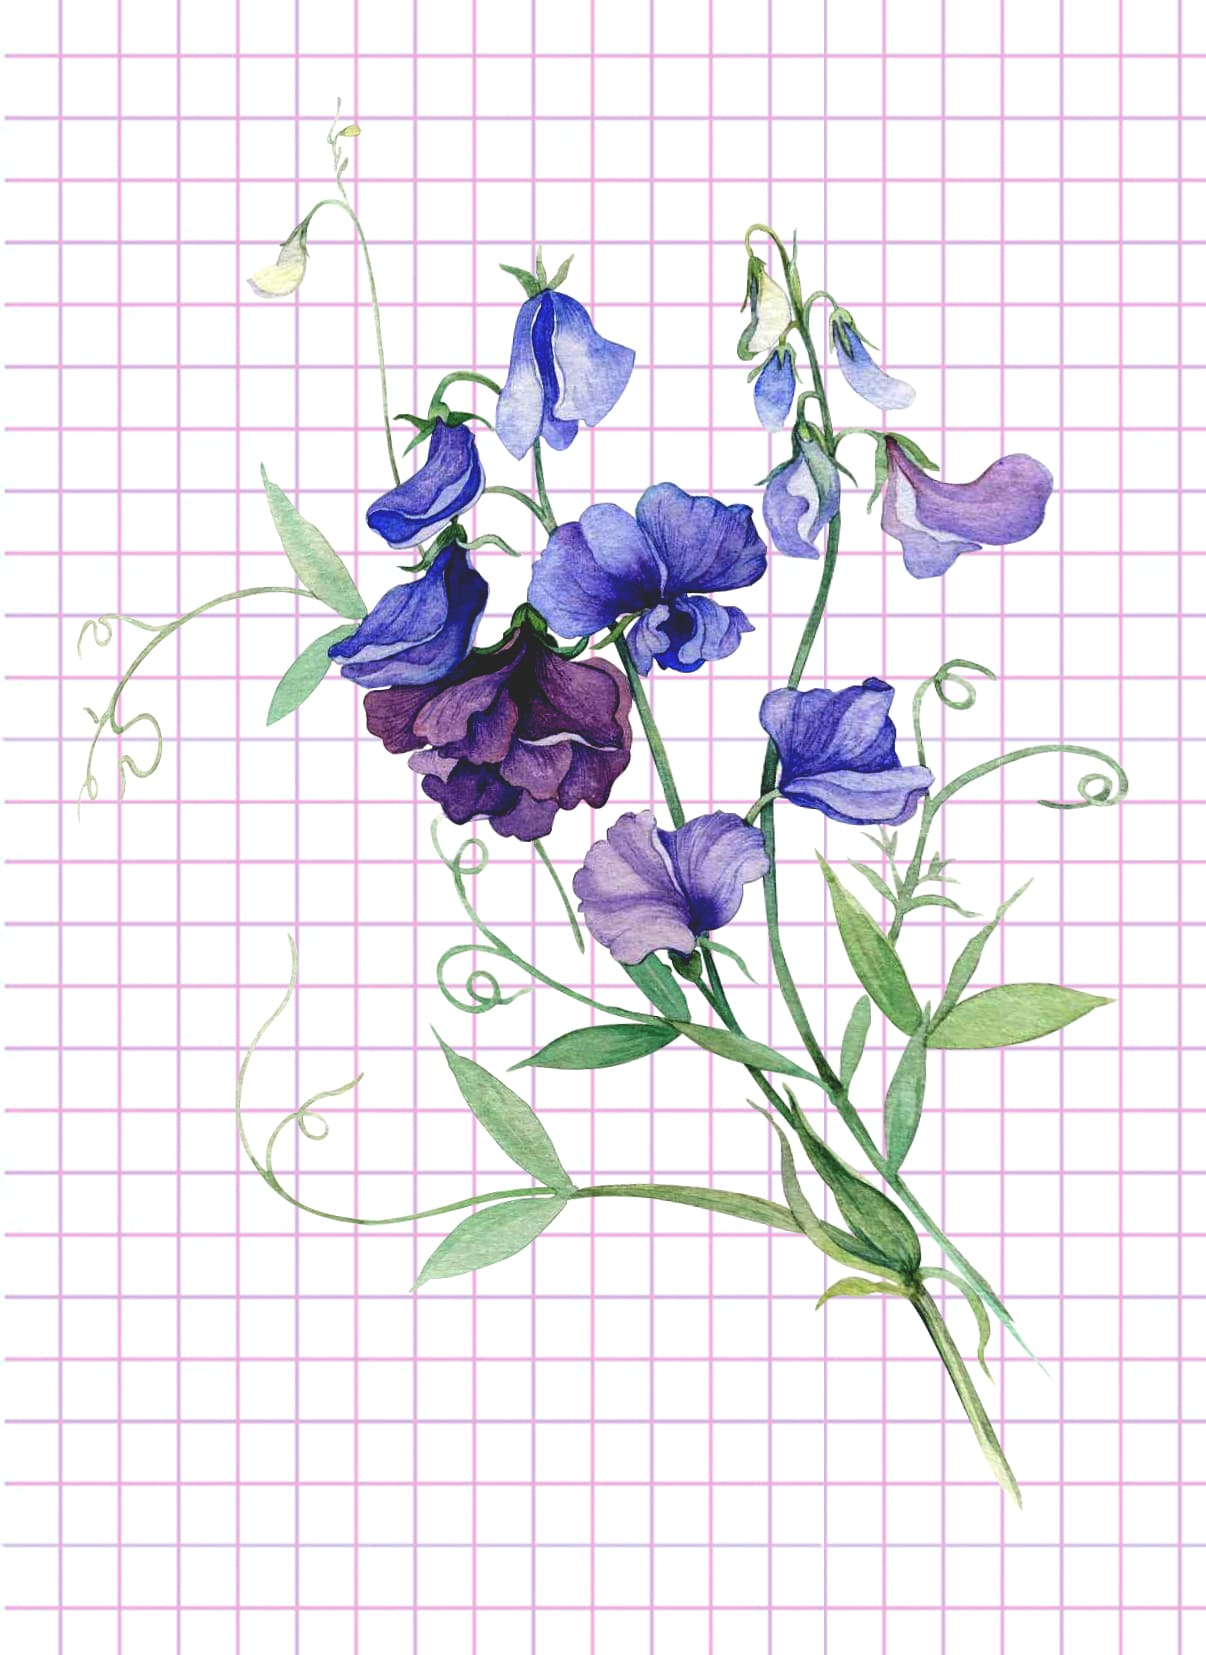 flowers-drawing-image-69